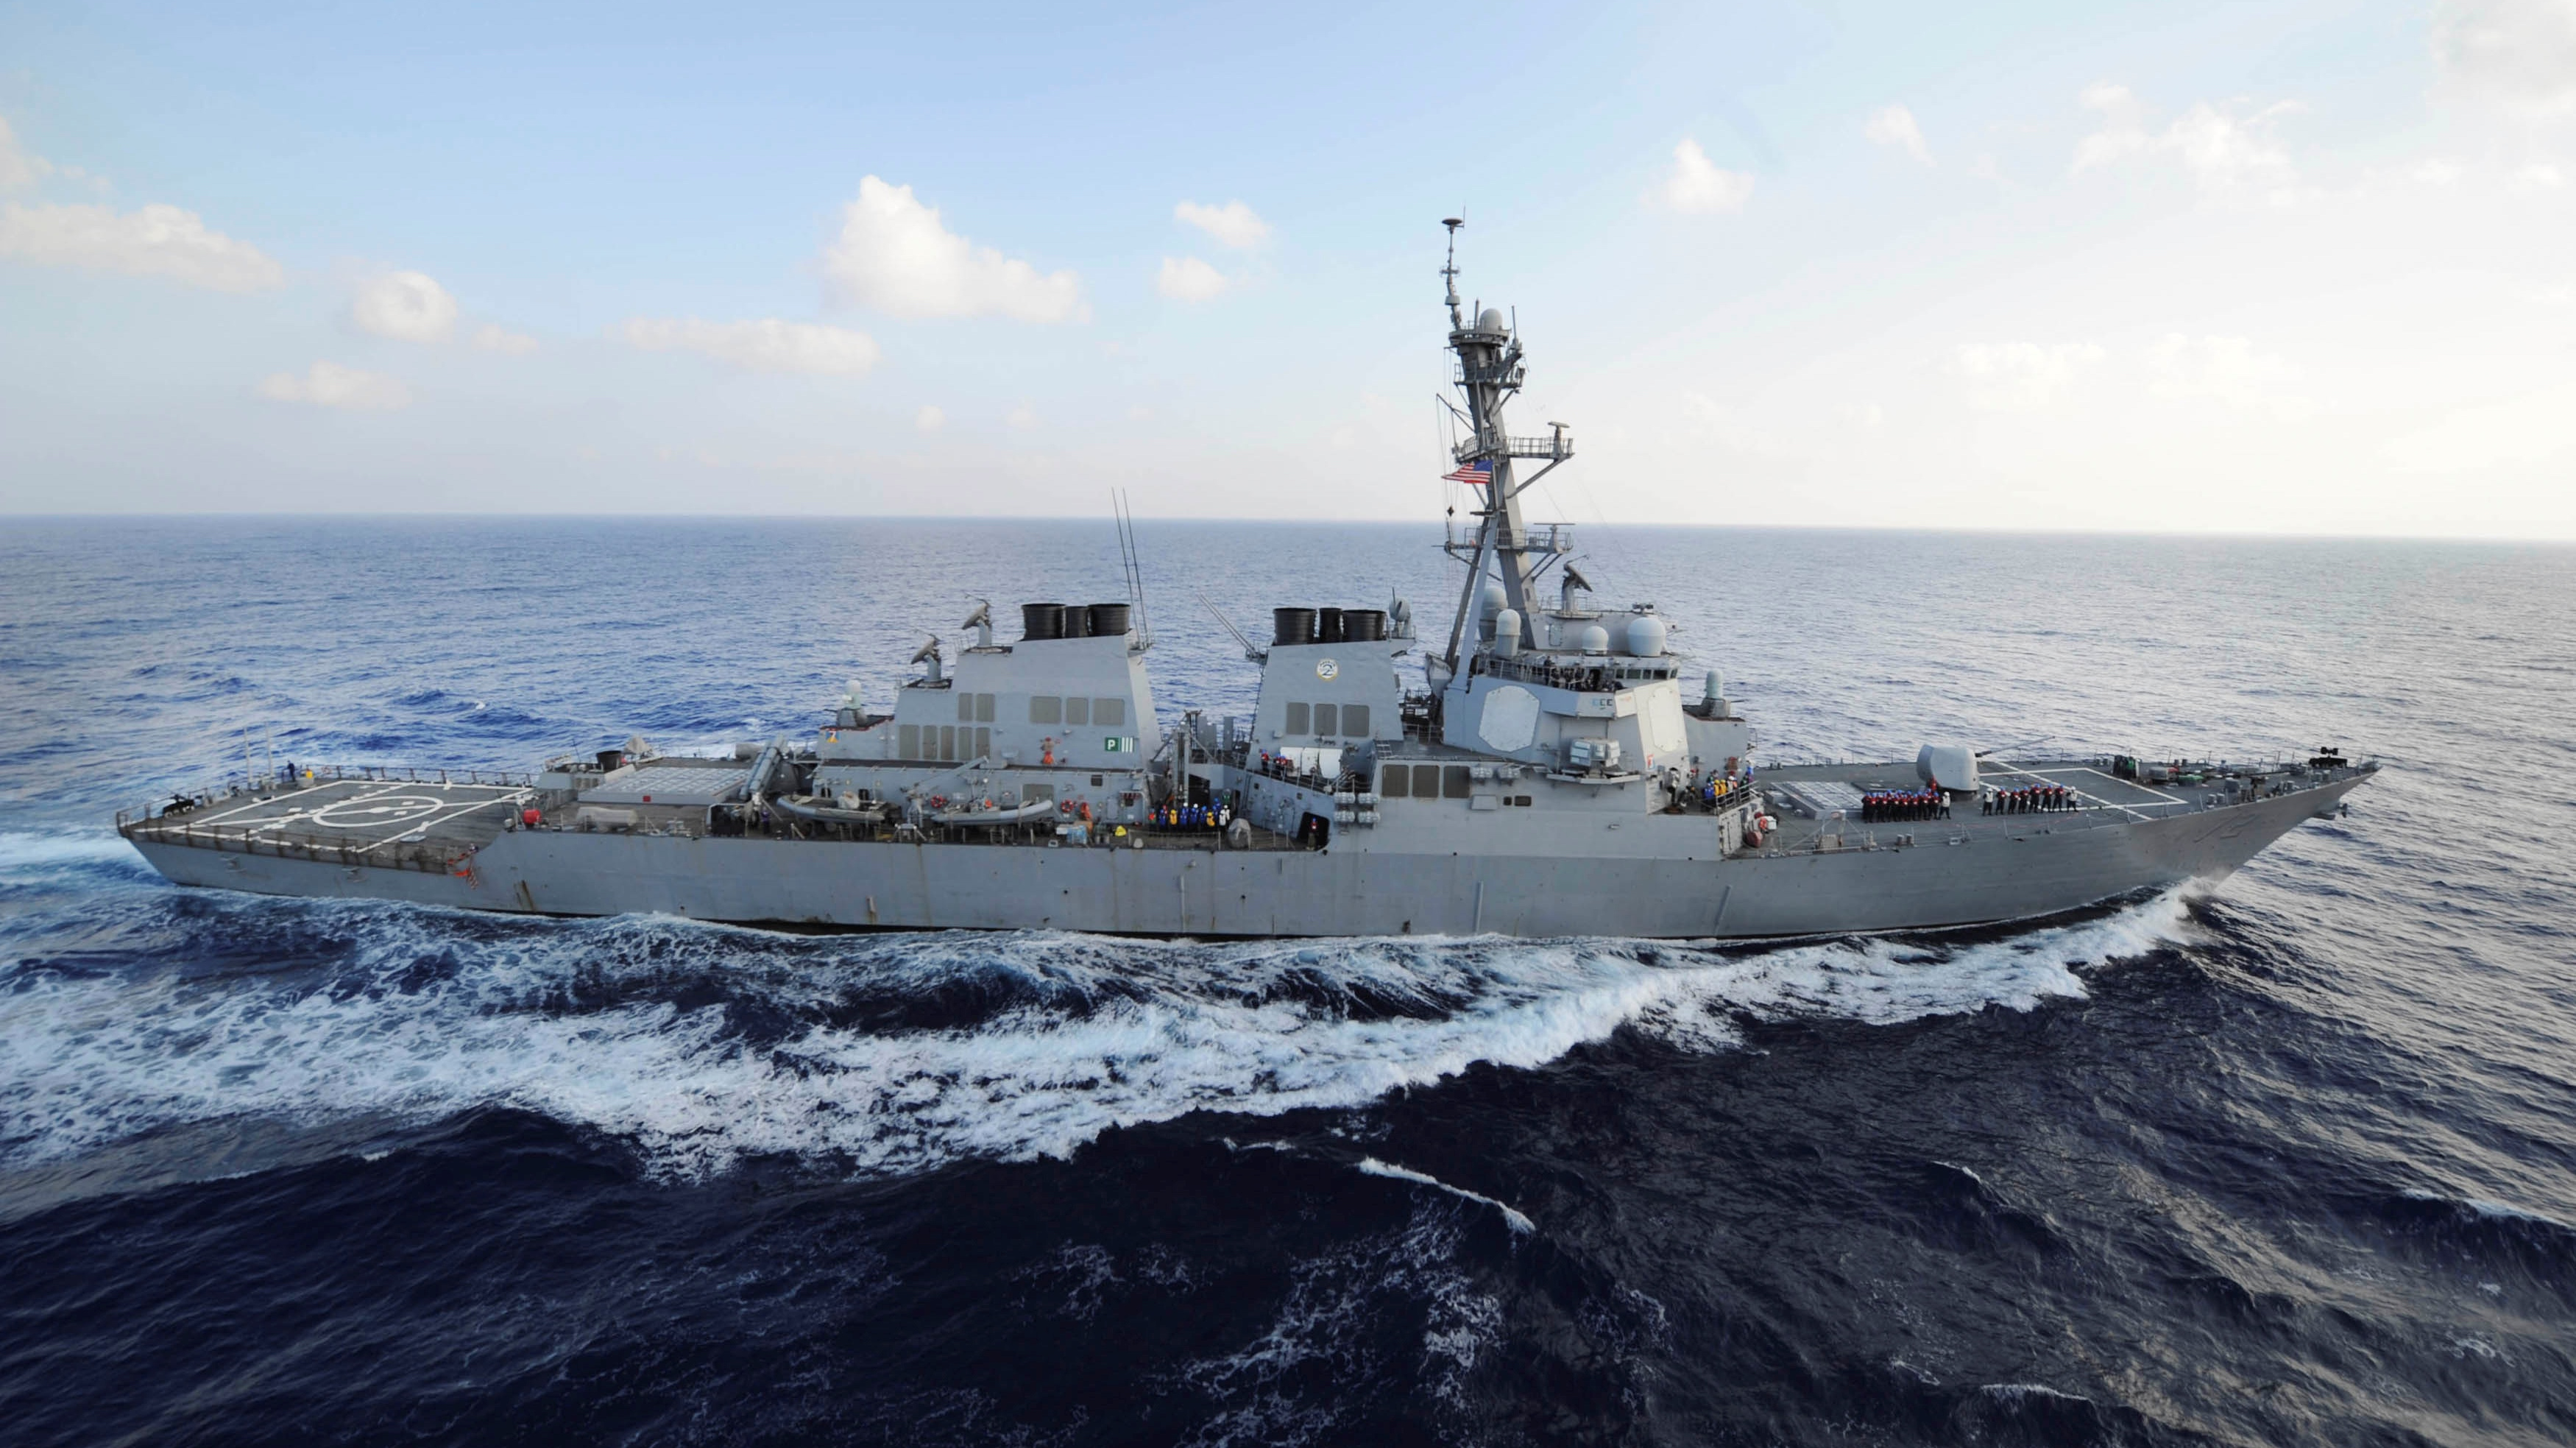 Guided-missile destroyer USS Mahan (DDG 72) transiting the Mediterranean Sea.